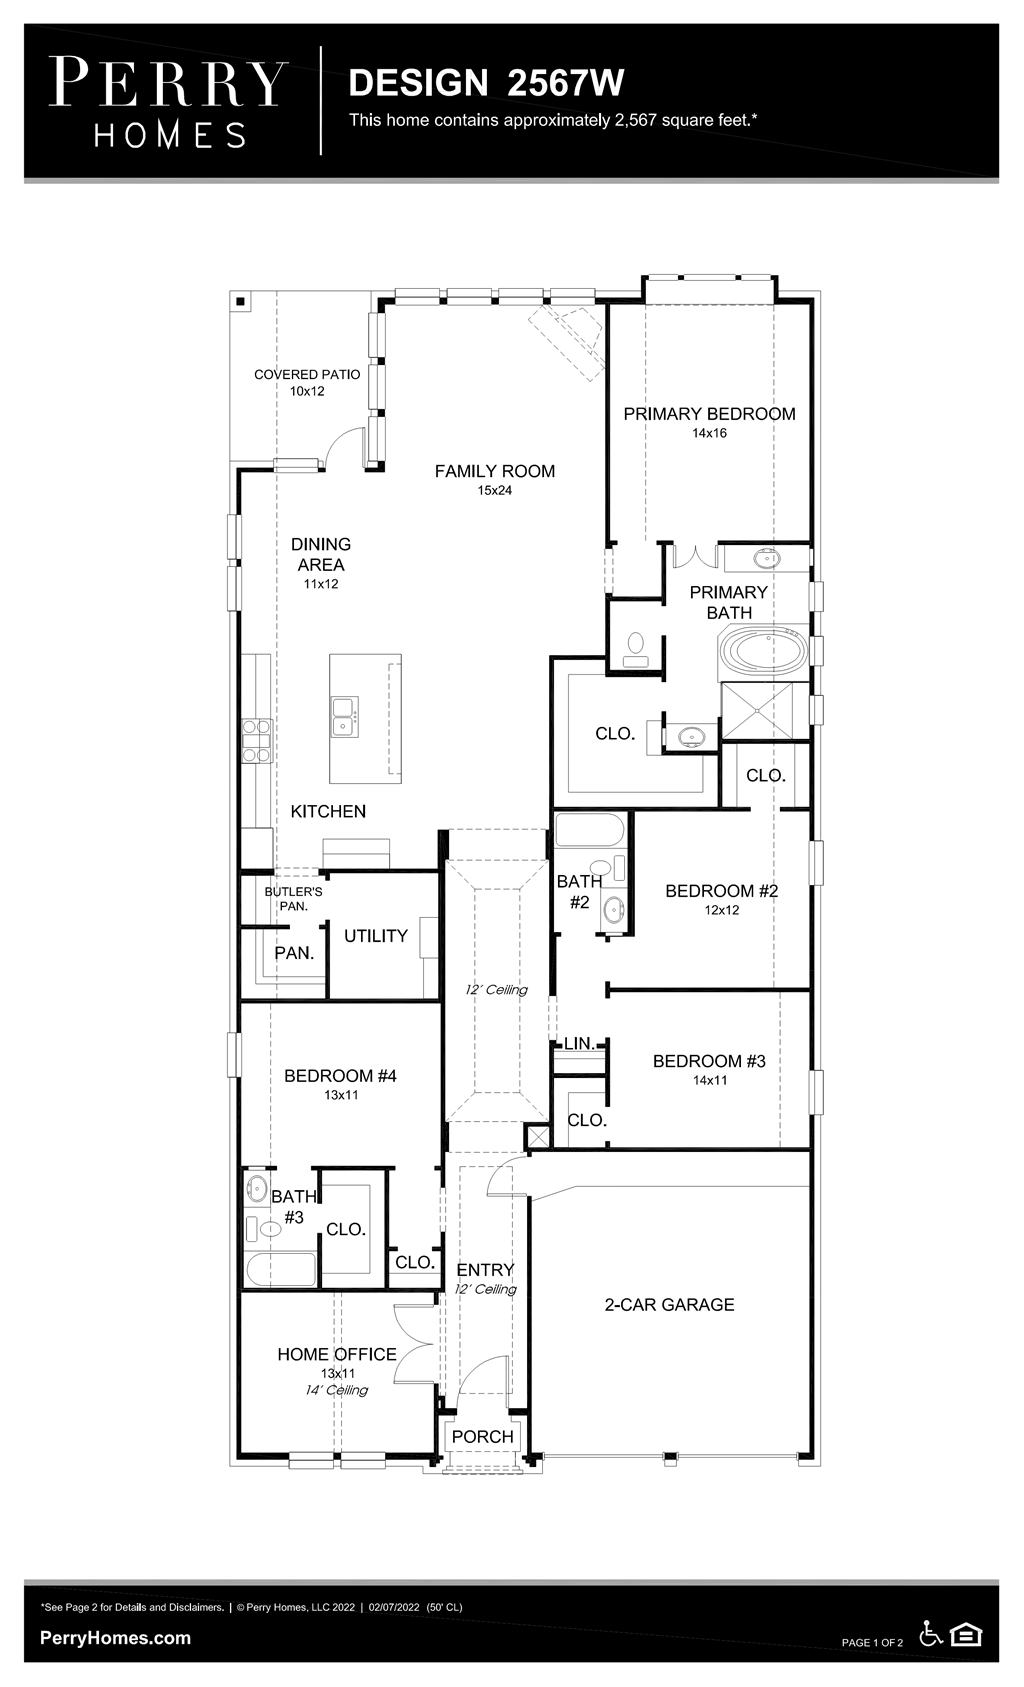 Floor Plan for 2567W